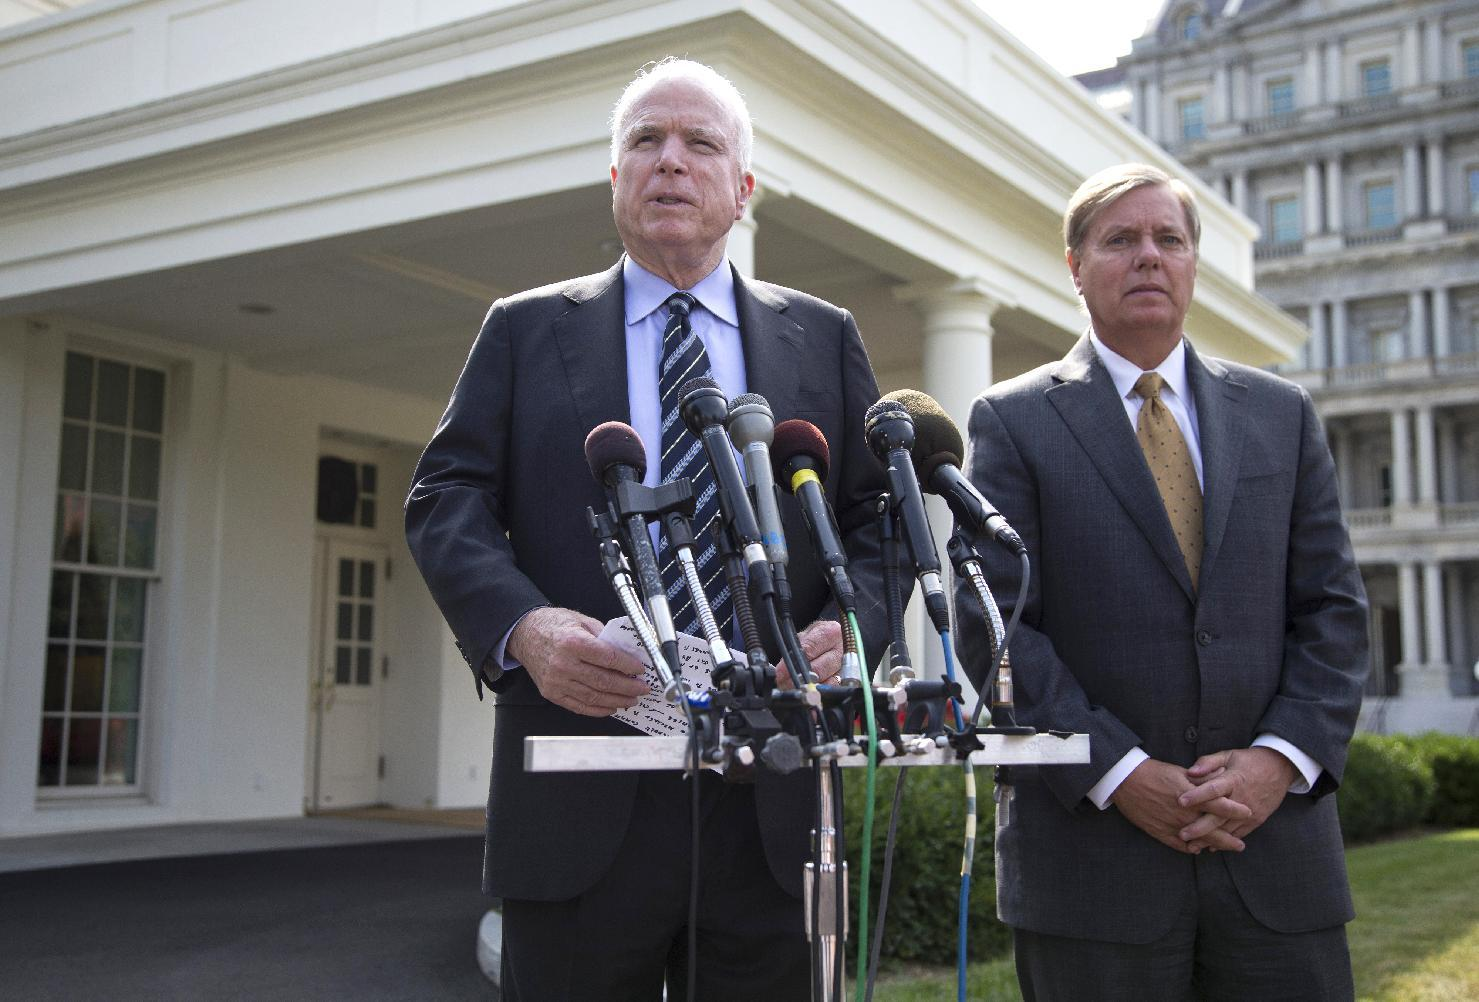 Sen. John McCain, R-Ariz., left, accompanied by Sen. Lindsey Graham, R-S.C., speaks with reporters outside the White House in Washington, Monday, Sept. 2, 2013, following a closed-door meeting with President Barack Obama to discuss the situation with Syria. President Barack Obama, working to persuade skeptical lawmakers to endorse a U.S. military intervention in civil war-wracked Syria, hosted the two leading Capitol Hill foreign policy hawks for talks and directed his national security team to testify before Congress in a determined effort to sell his plan for limited missile strikes against Syrian President Bashar Assad's regime. (AP Photo/Evan Vucci)